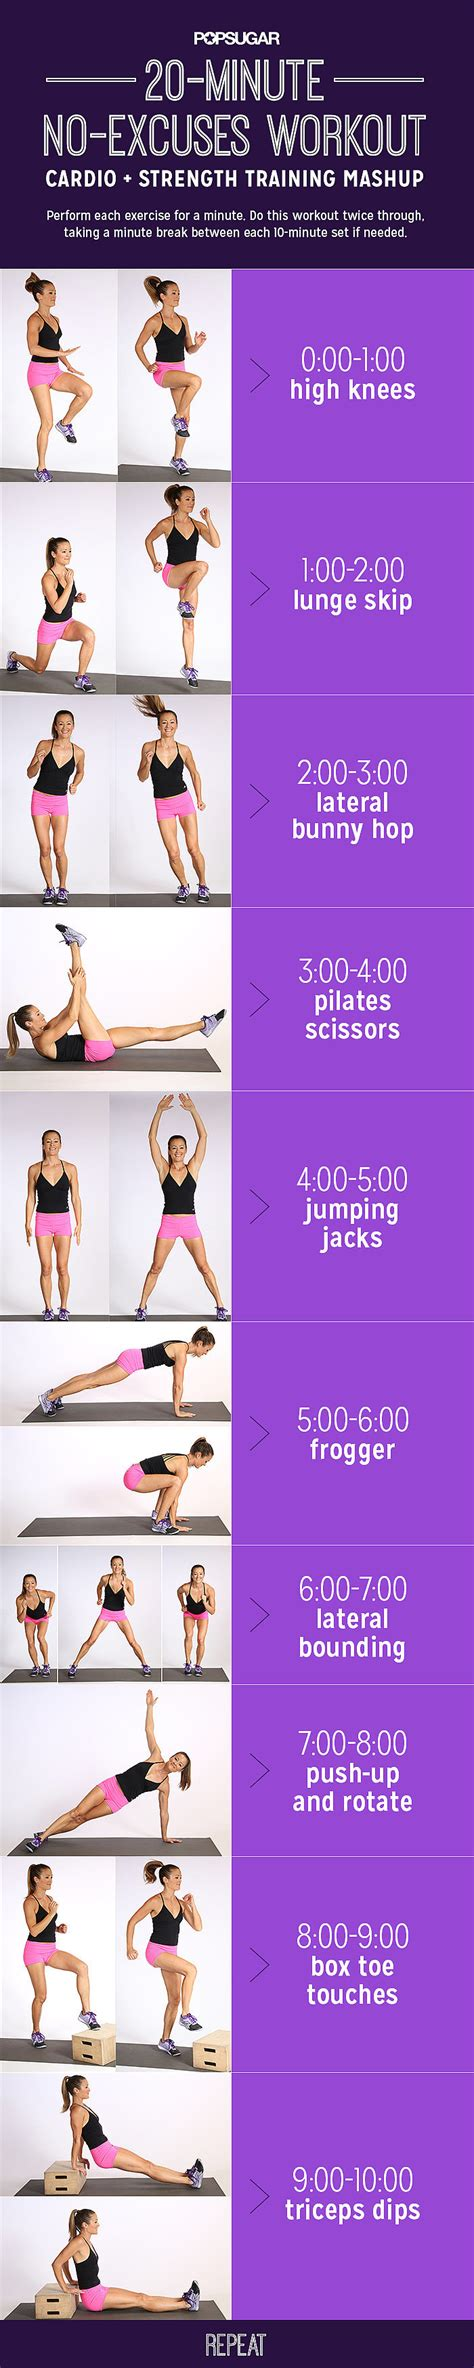 get fit done 20 fast ways to climb your way to the top of the corporate fitness ladder books printable no equipment cardio workout popsugar fitness